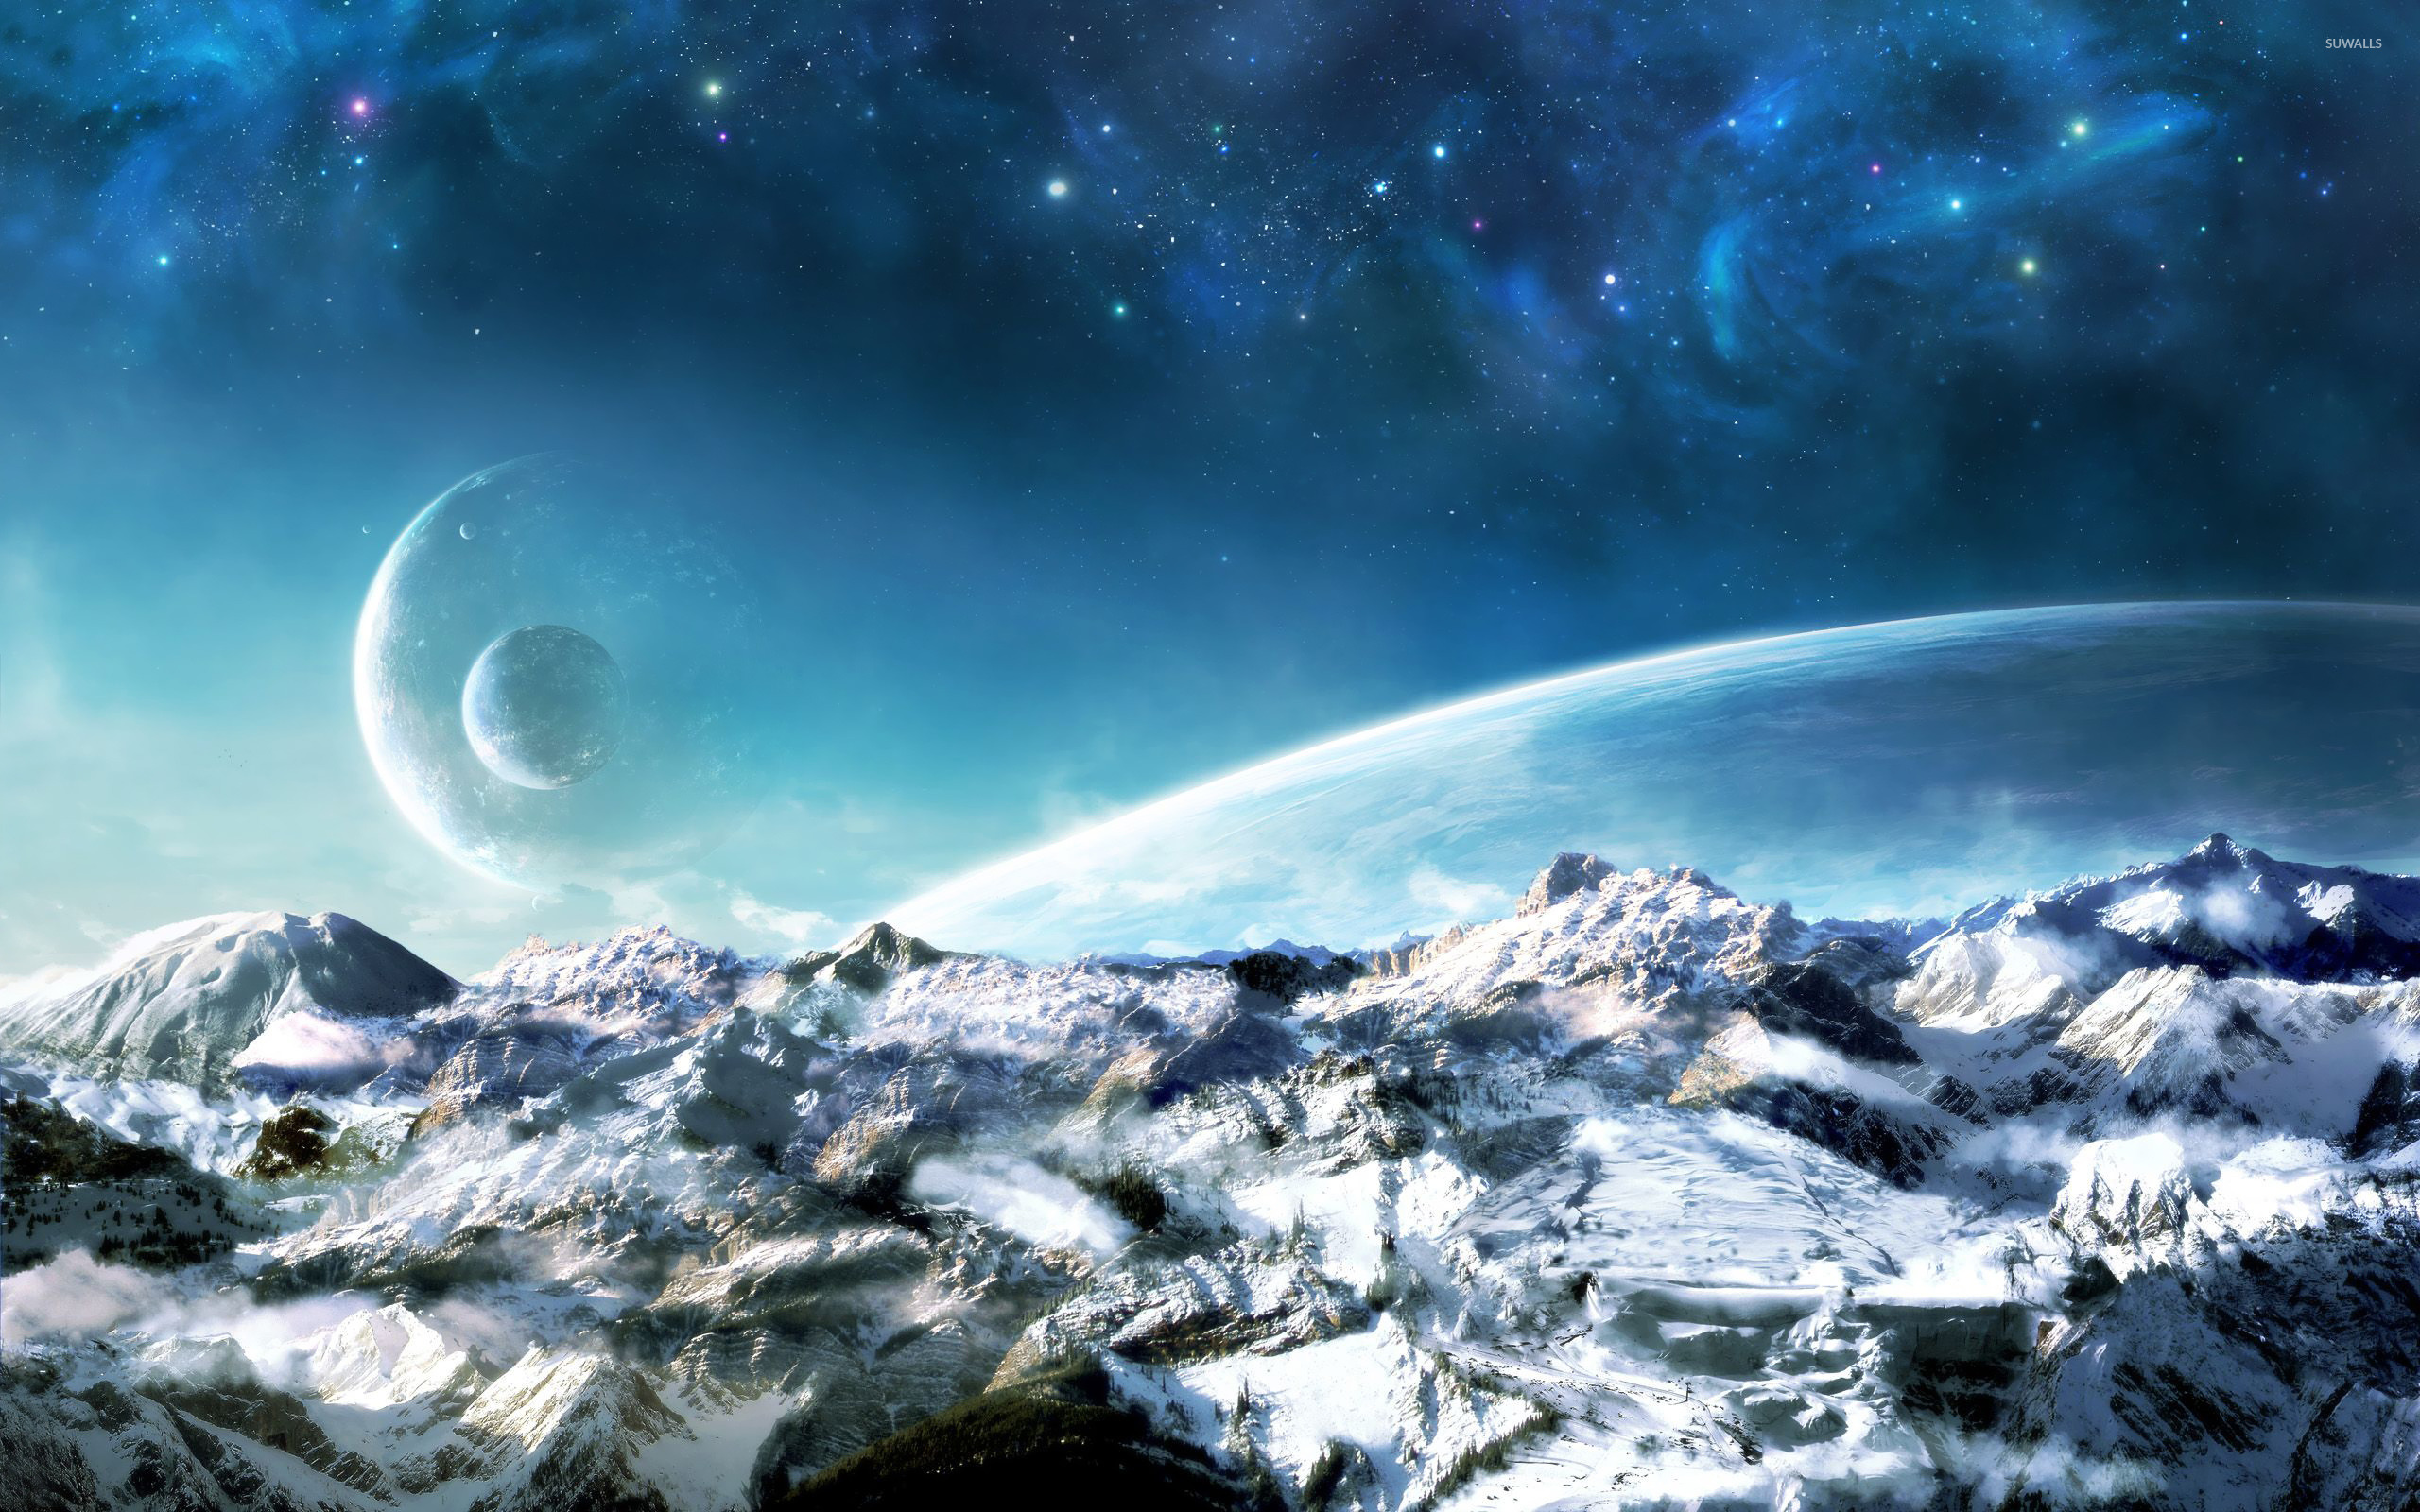 Monstres Artificiels (Wot5c) Planets-over-the-snowy-mountains-22135-2560x1600